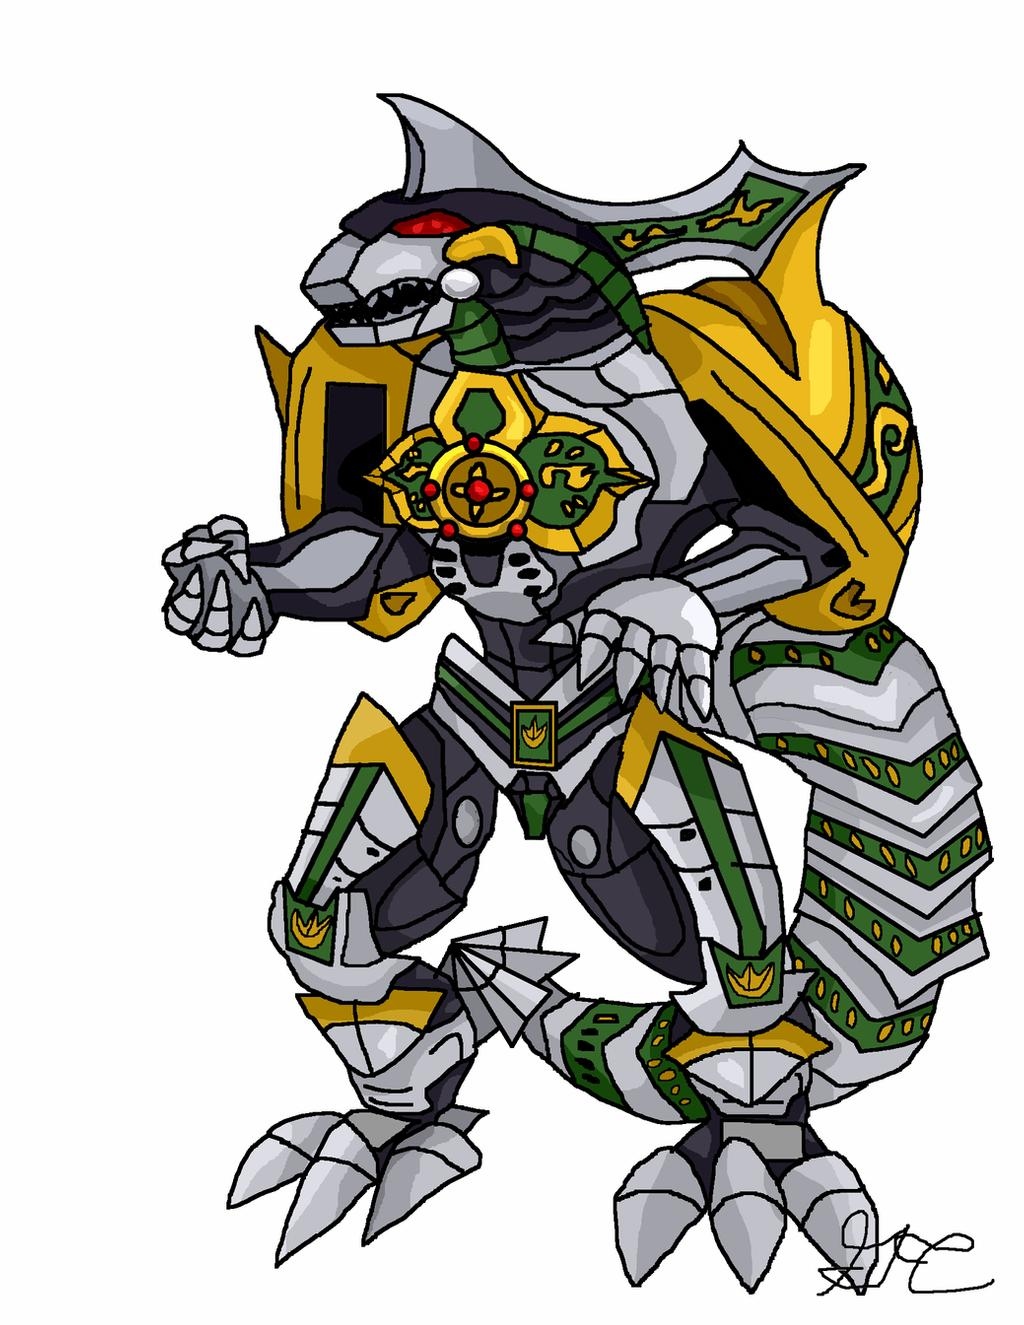 My Movie Concept - Dragonzord by LavenderRanger on DeviantArt